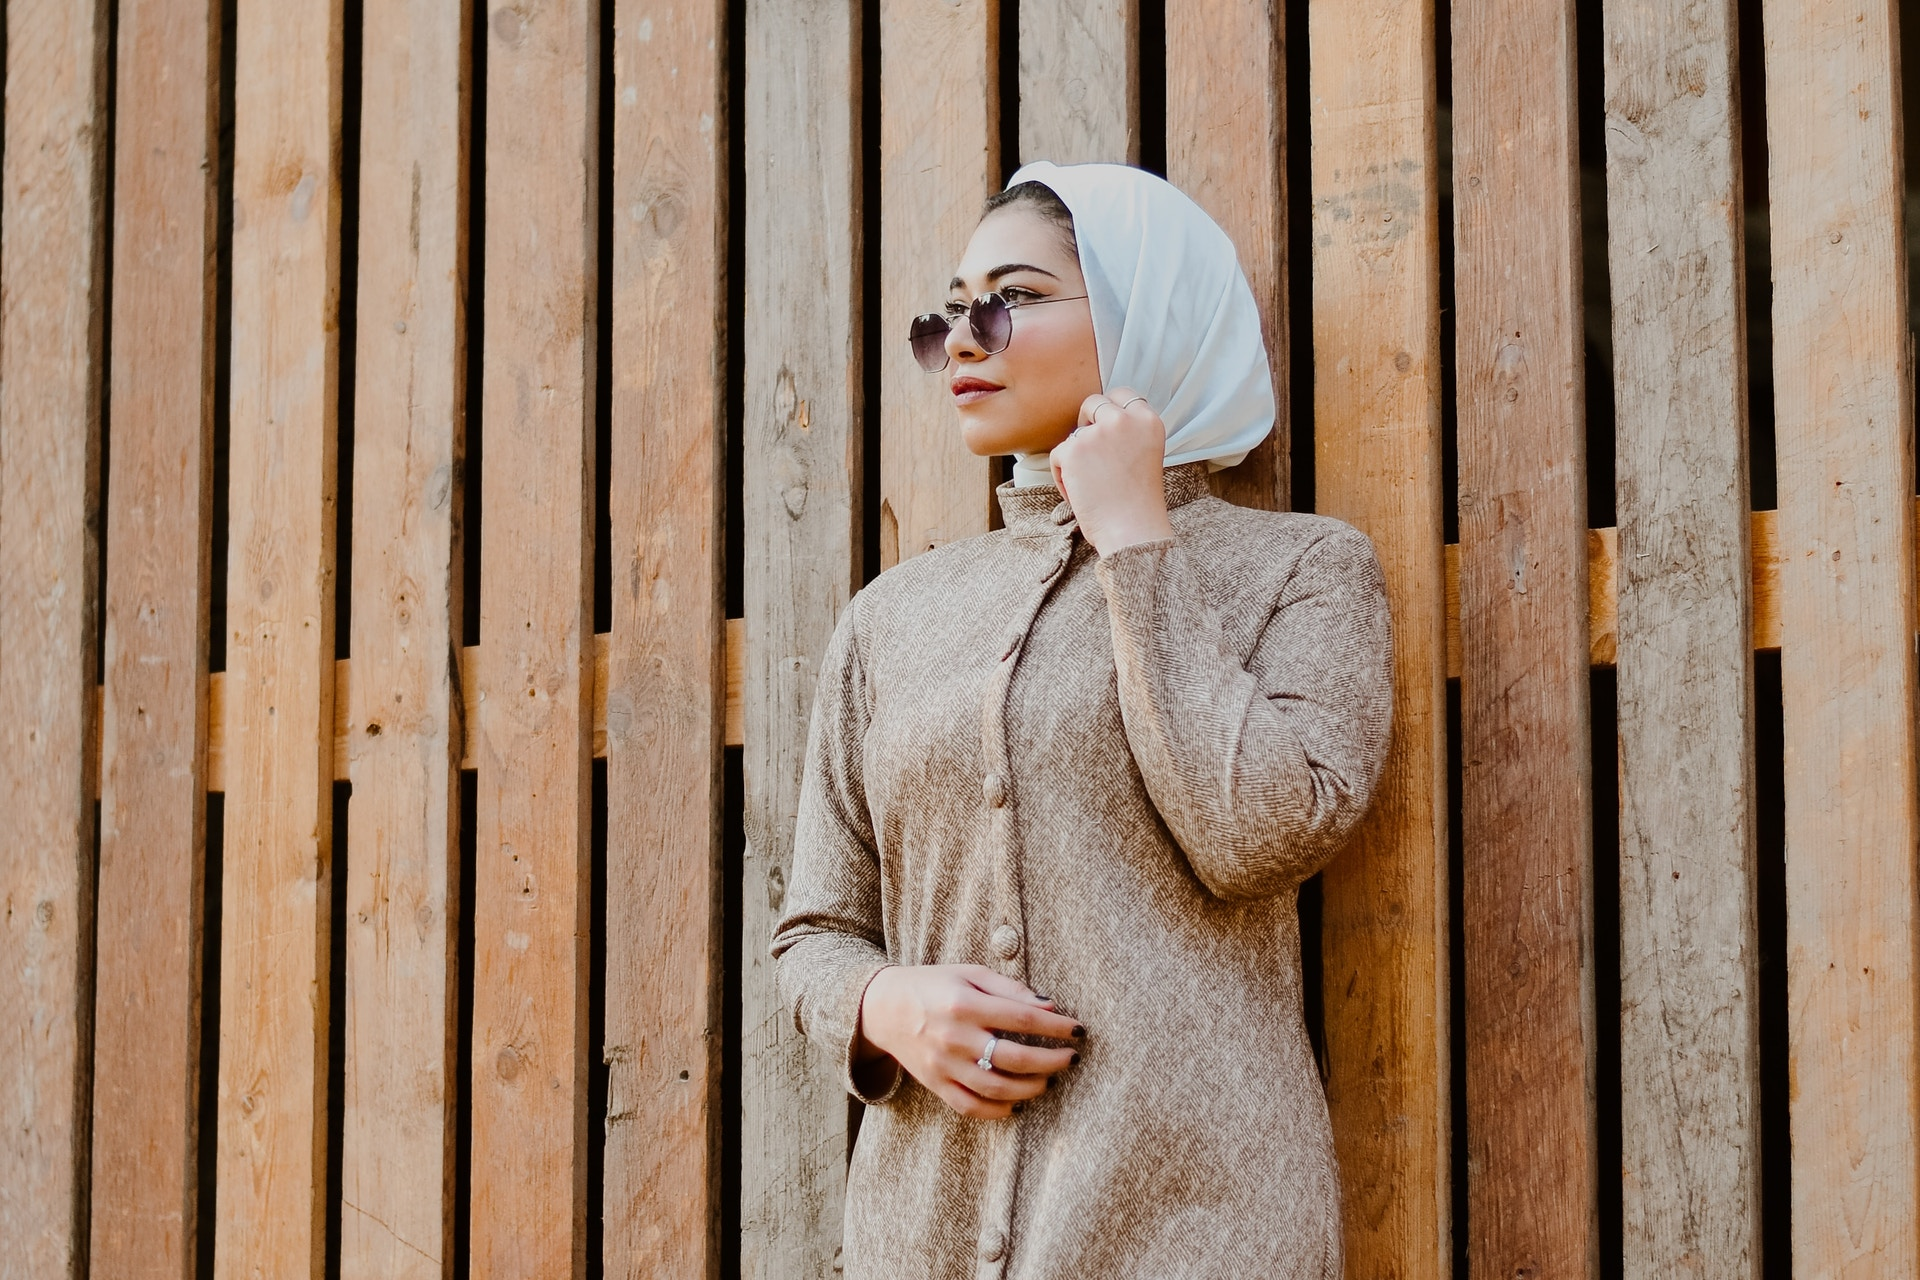 arab woman wearing sunglasses standing against wooden wall